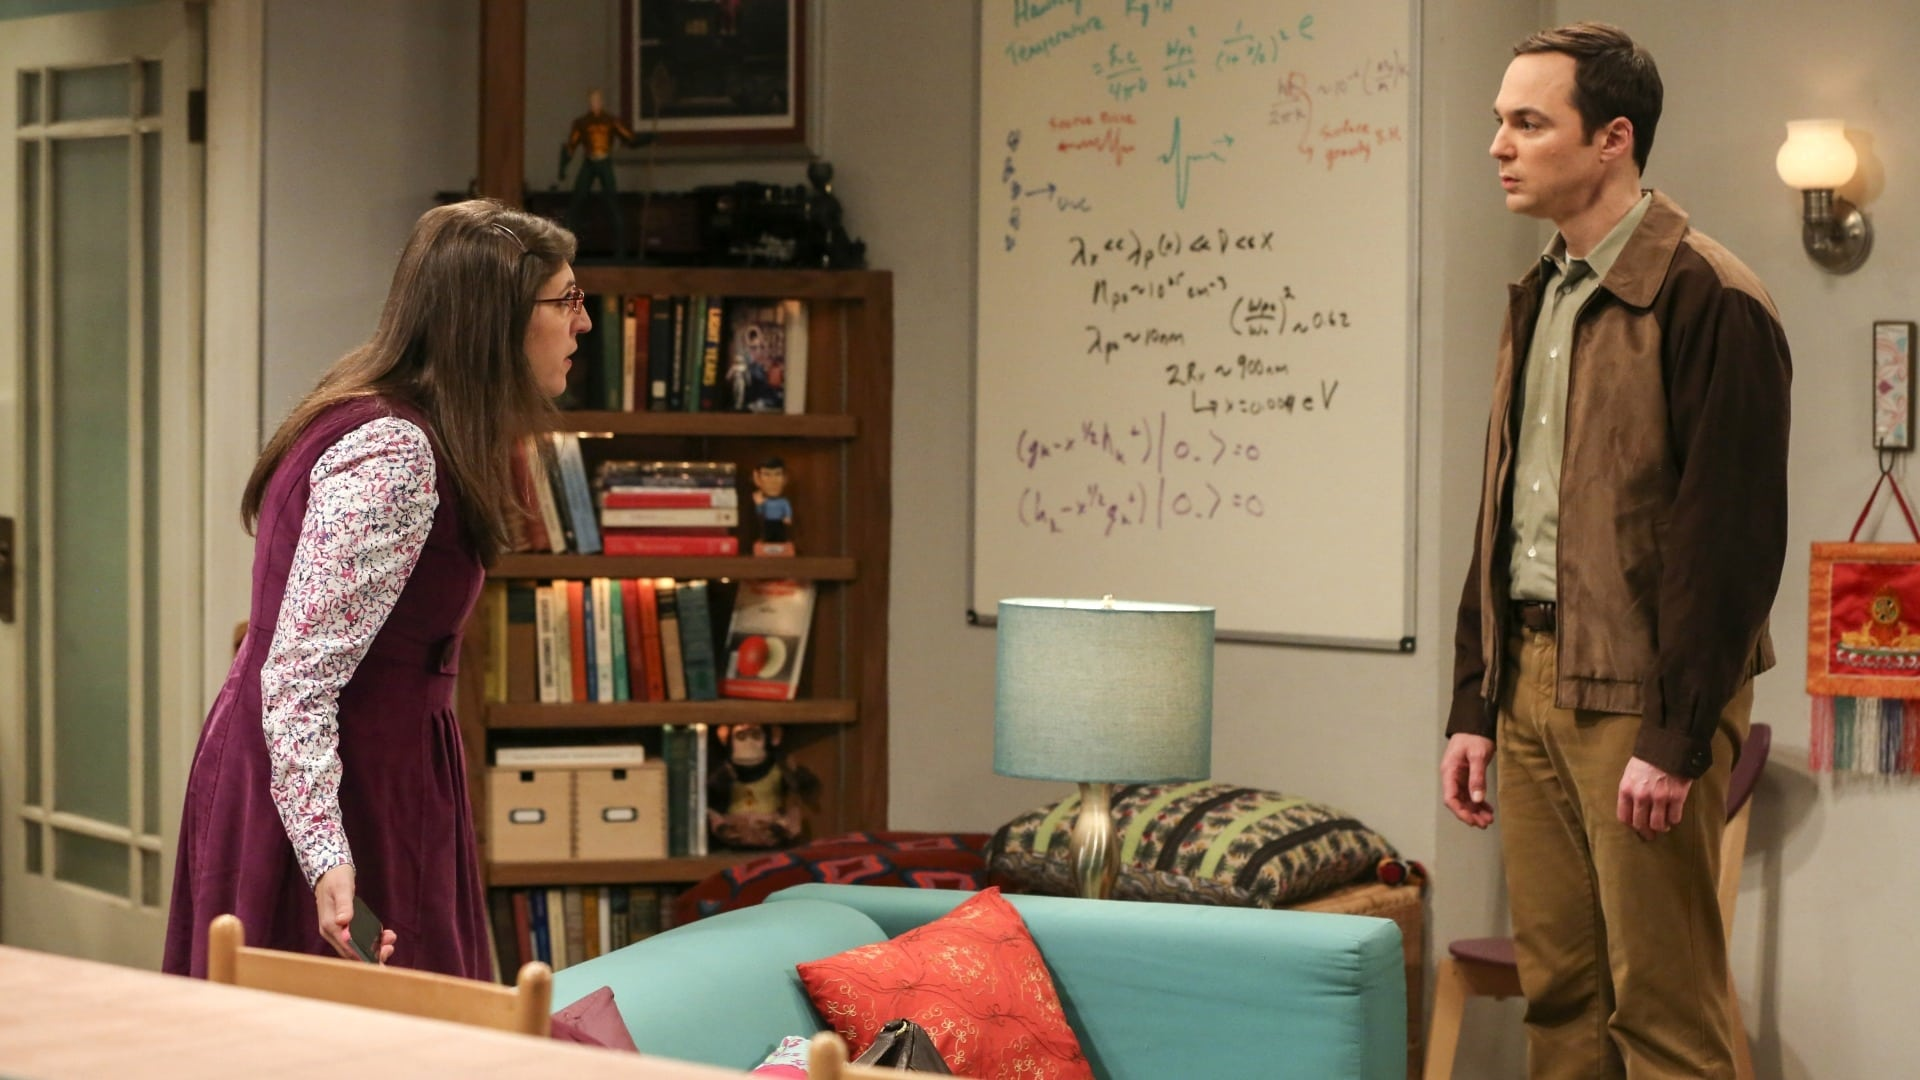 big bang theory essay When i was younger, i watched a show on televsion about the big bang theory, and was amazed now, i always think, how did the world begin well, i wrote a persuasive essay, supporting the big bang.